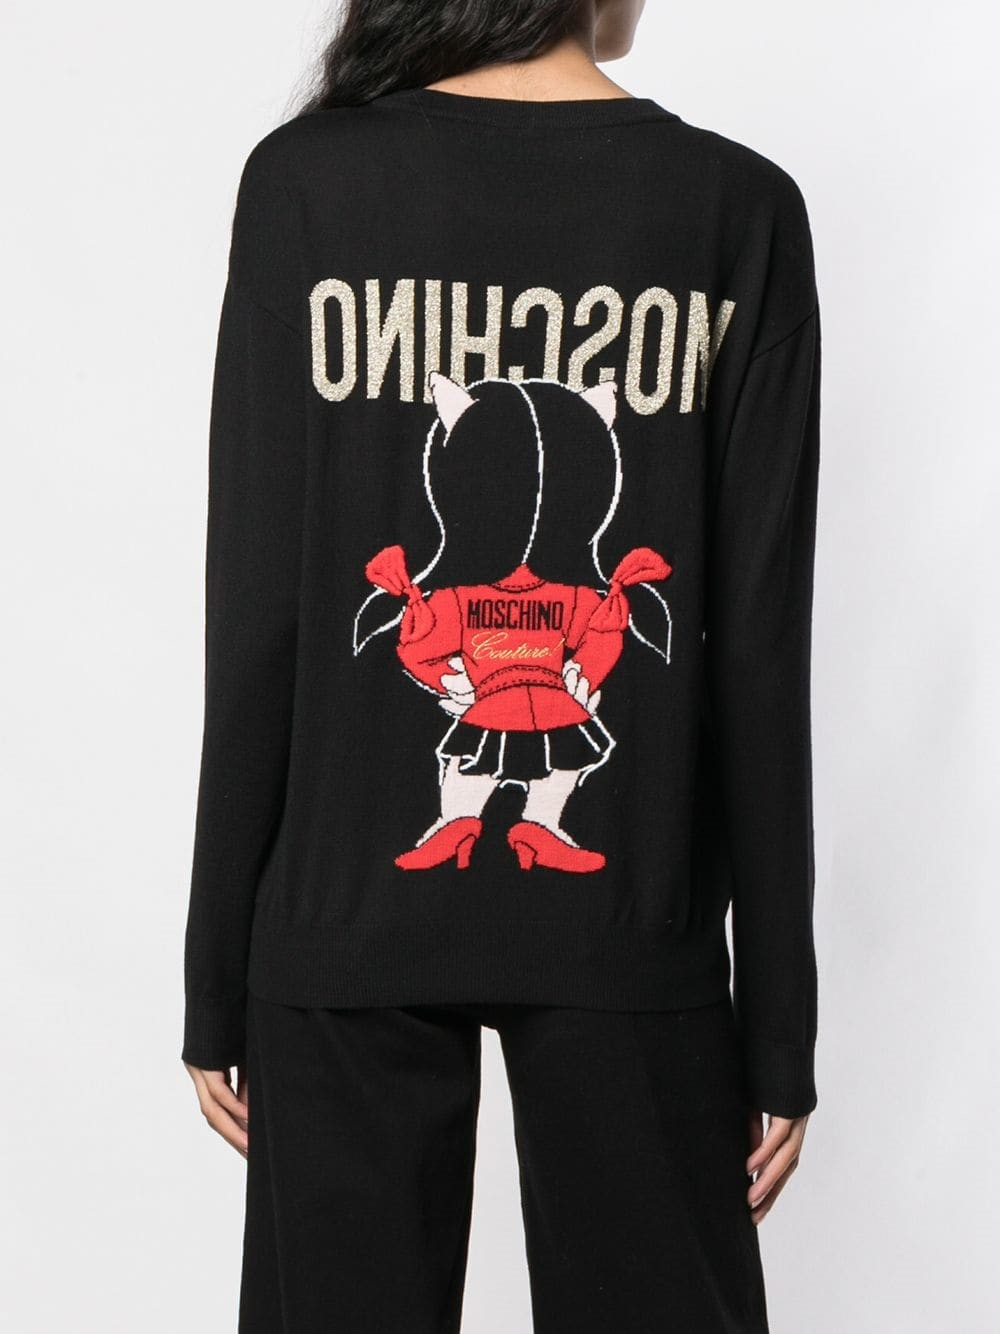 38423c31 moschino CIRCUS SWEATER available on montiboutique.com - 26242